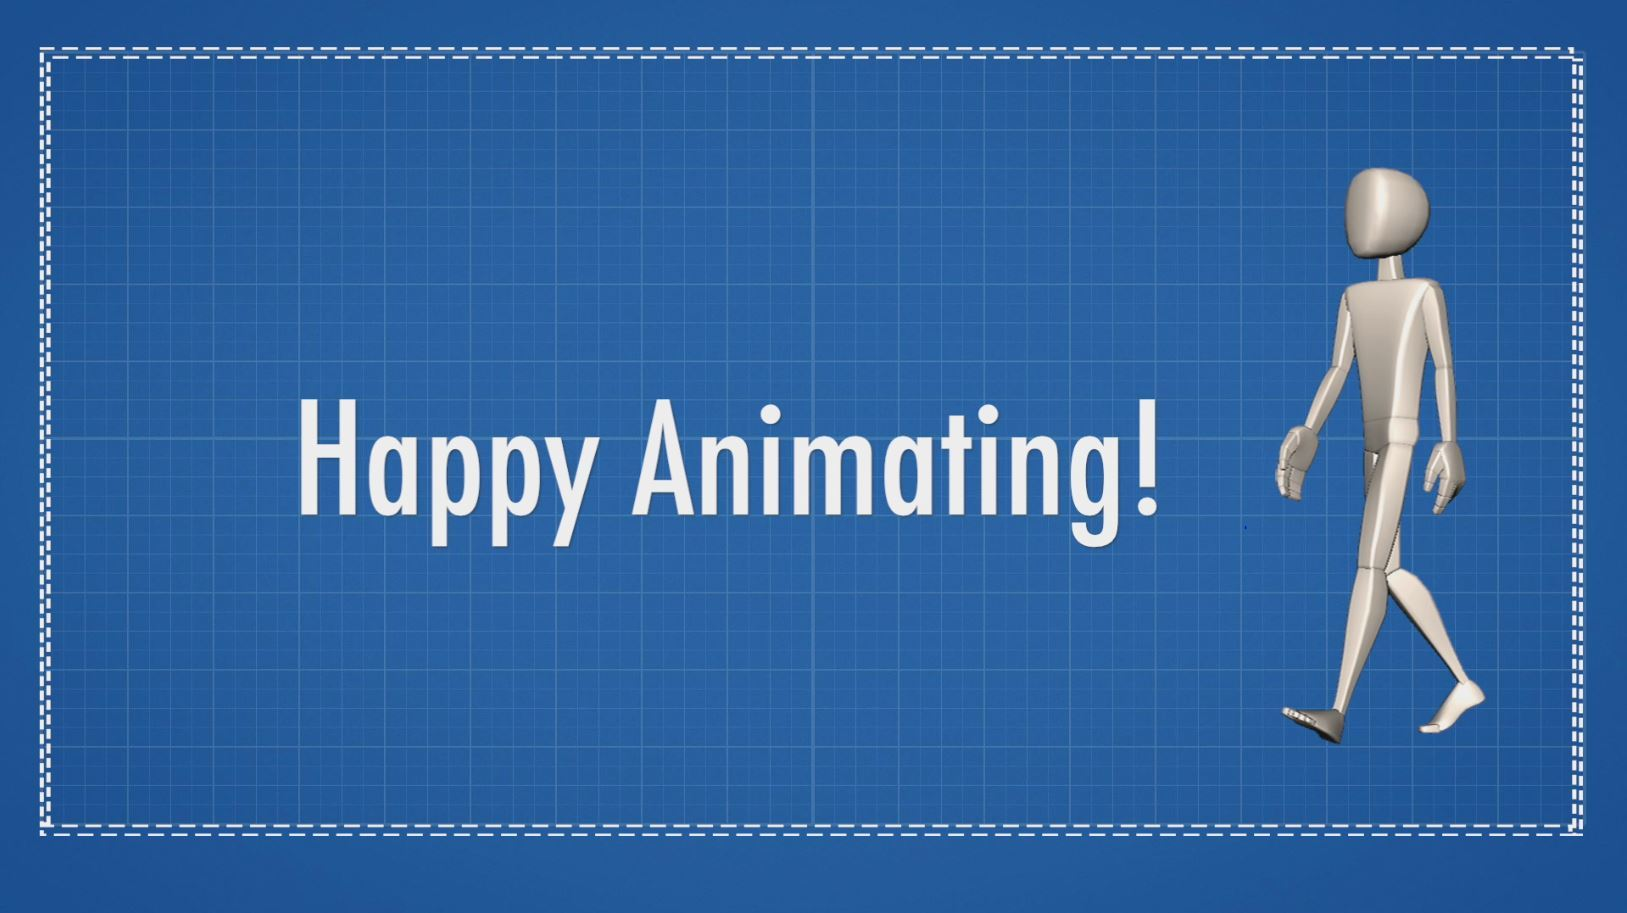 animation walk cycle happy animating